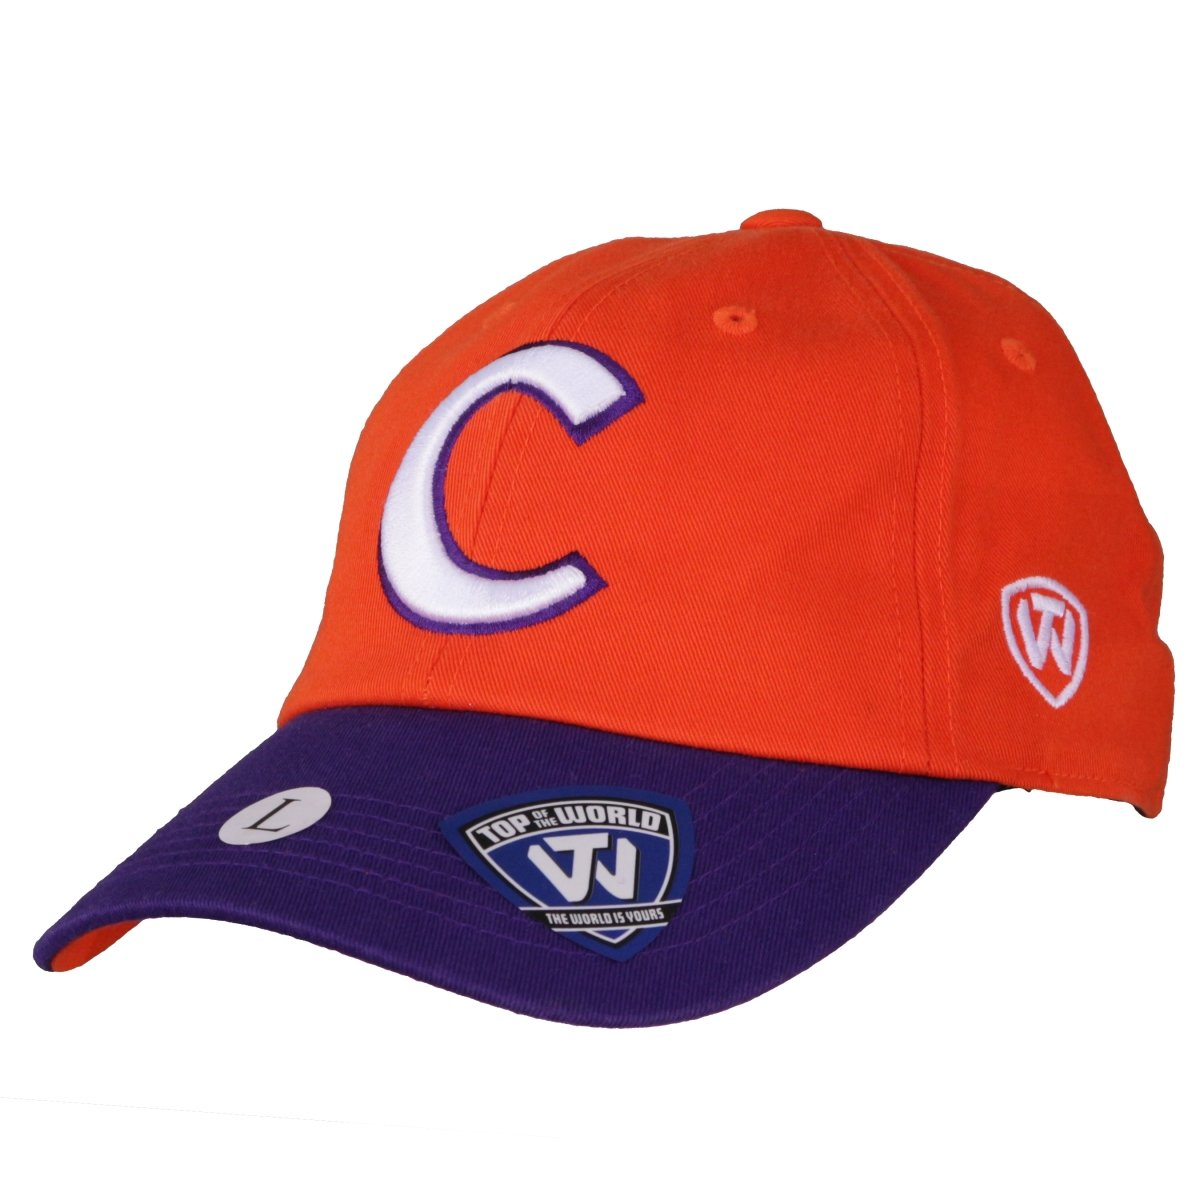 Top of the World Clemson Tigers Script Letterman Fitted Hat - Orange and Purple - Mr. Knickerbocker